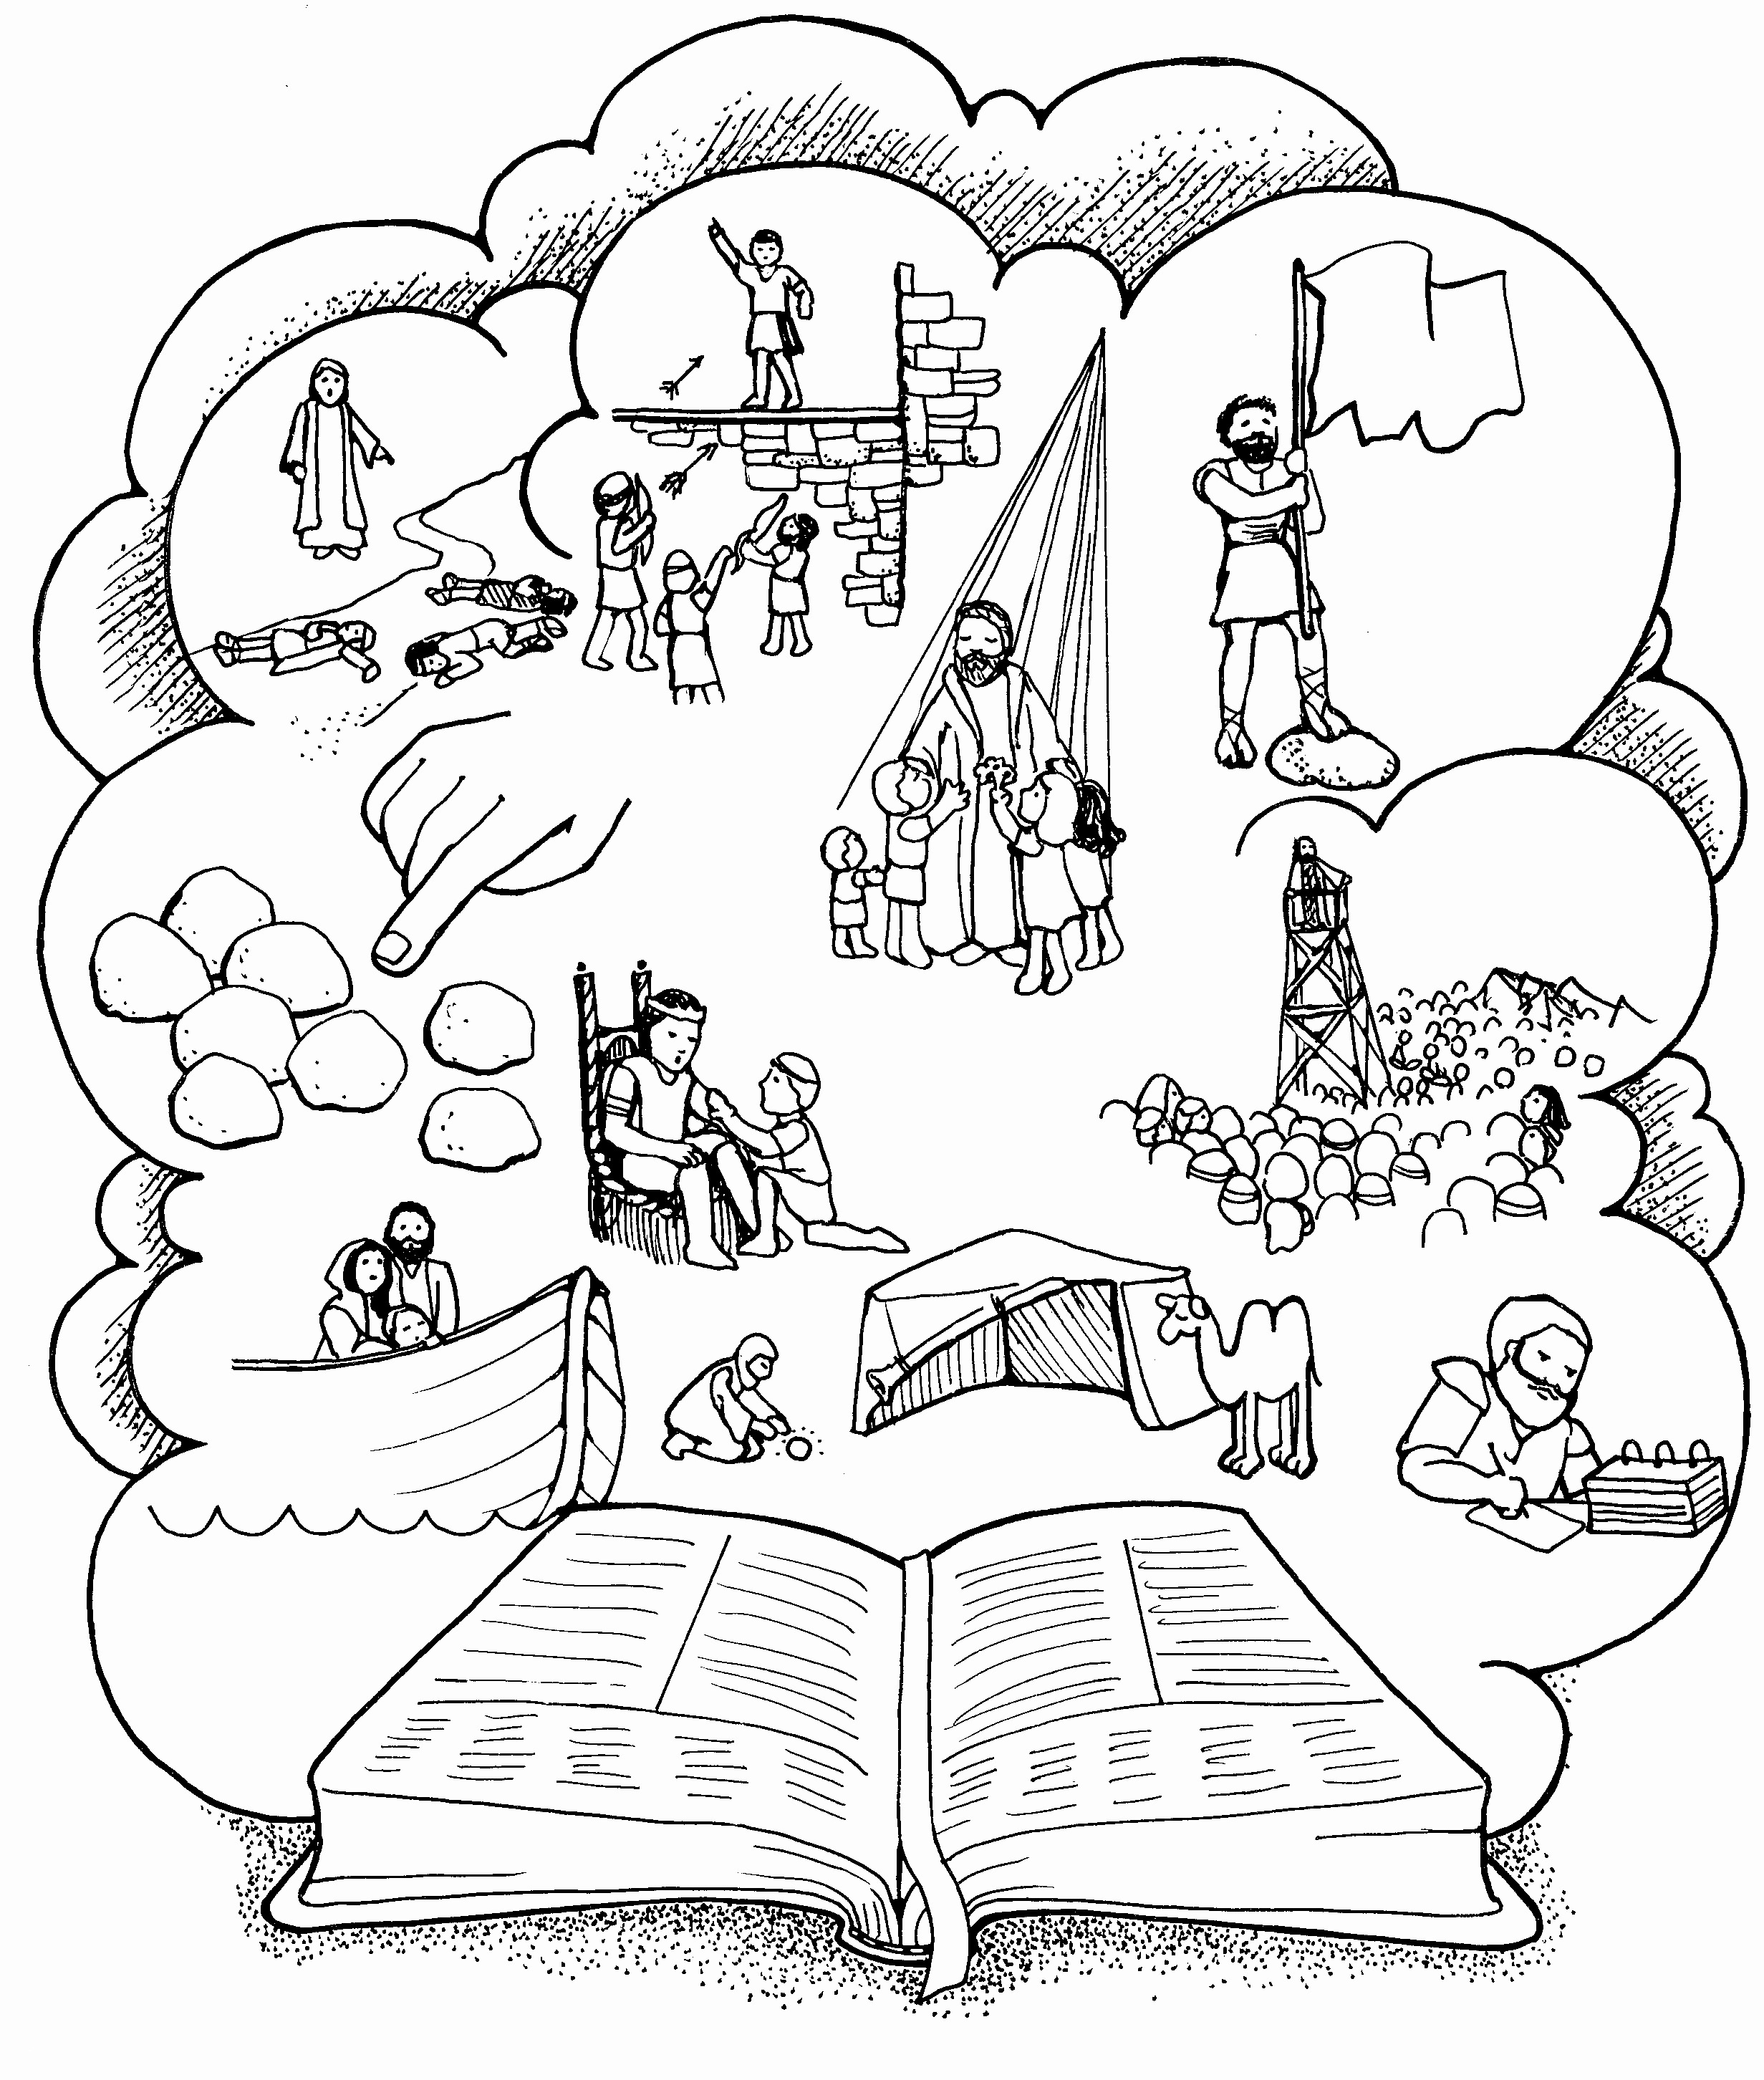 isaac and rebekah coloring pages isaac and rebekah coloring pages pages and coloring rebekah isaac